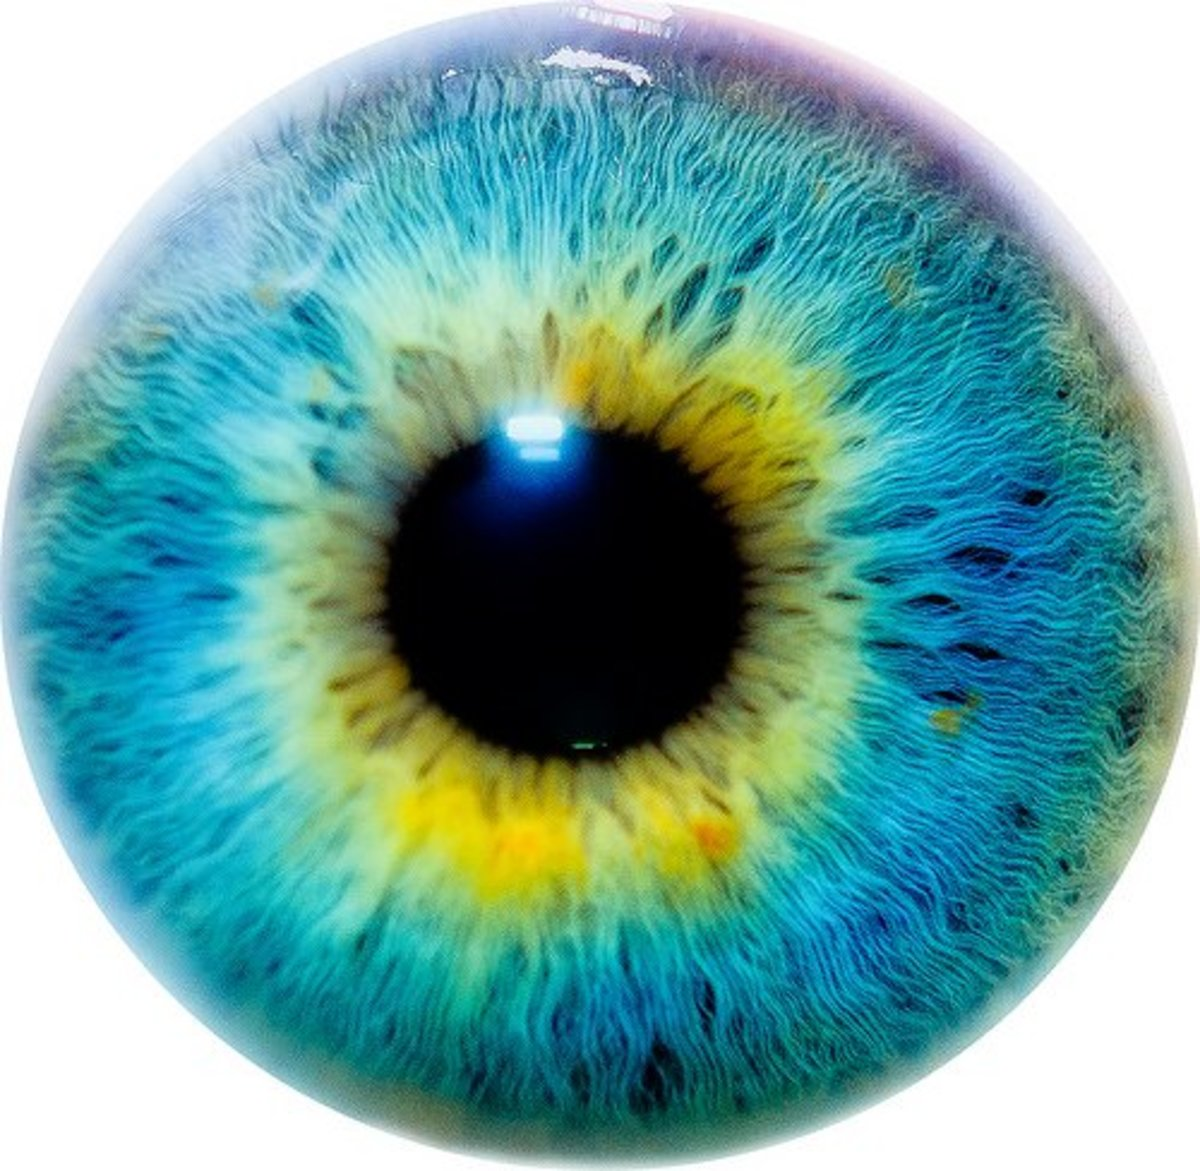 Does Eye Color Indicate Intelligence and Personality?  What Are Your Eyes Telling the World?